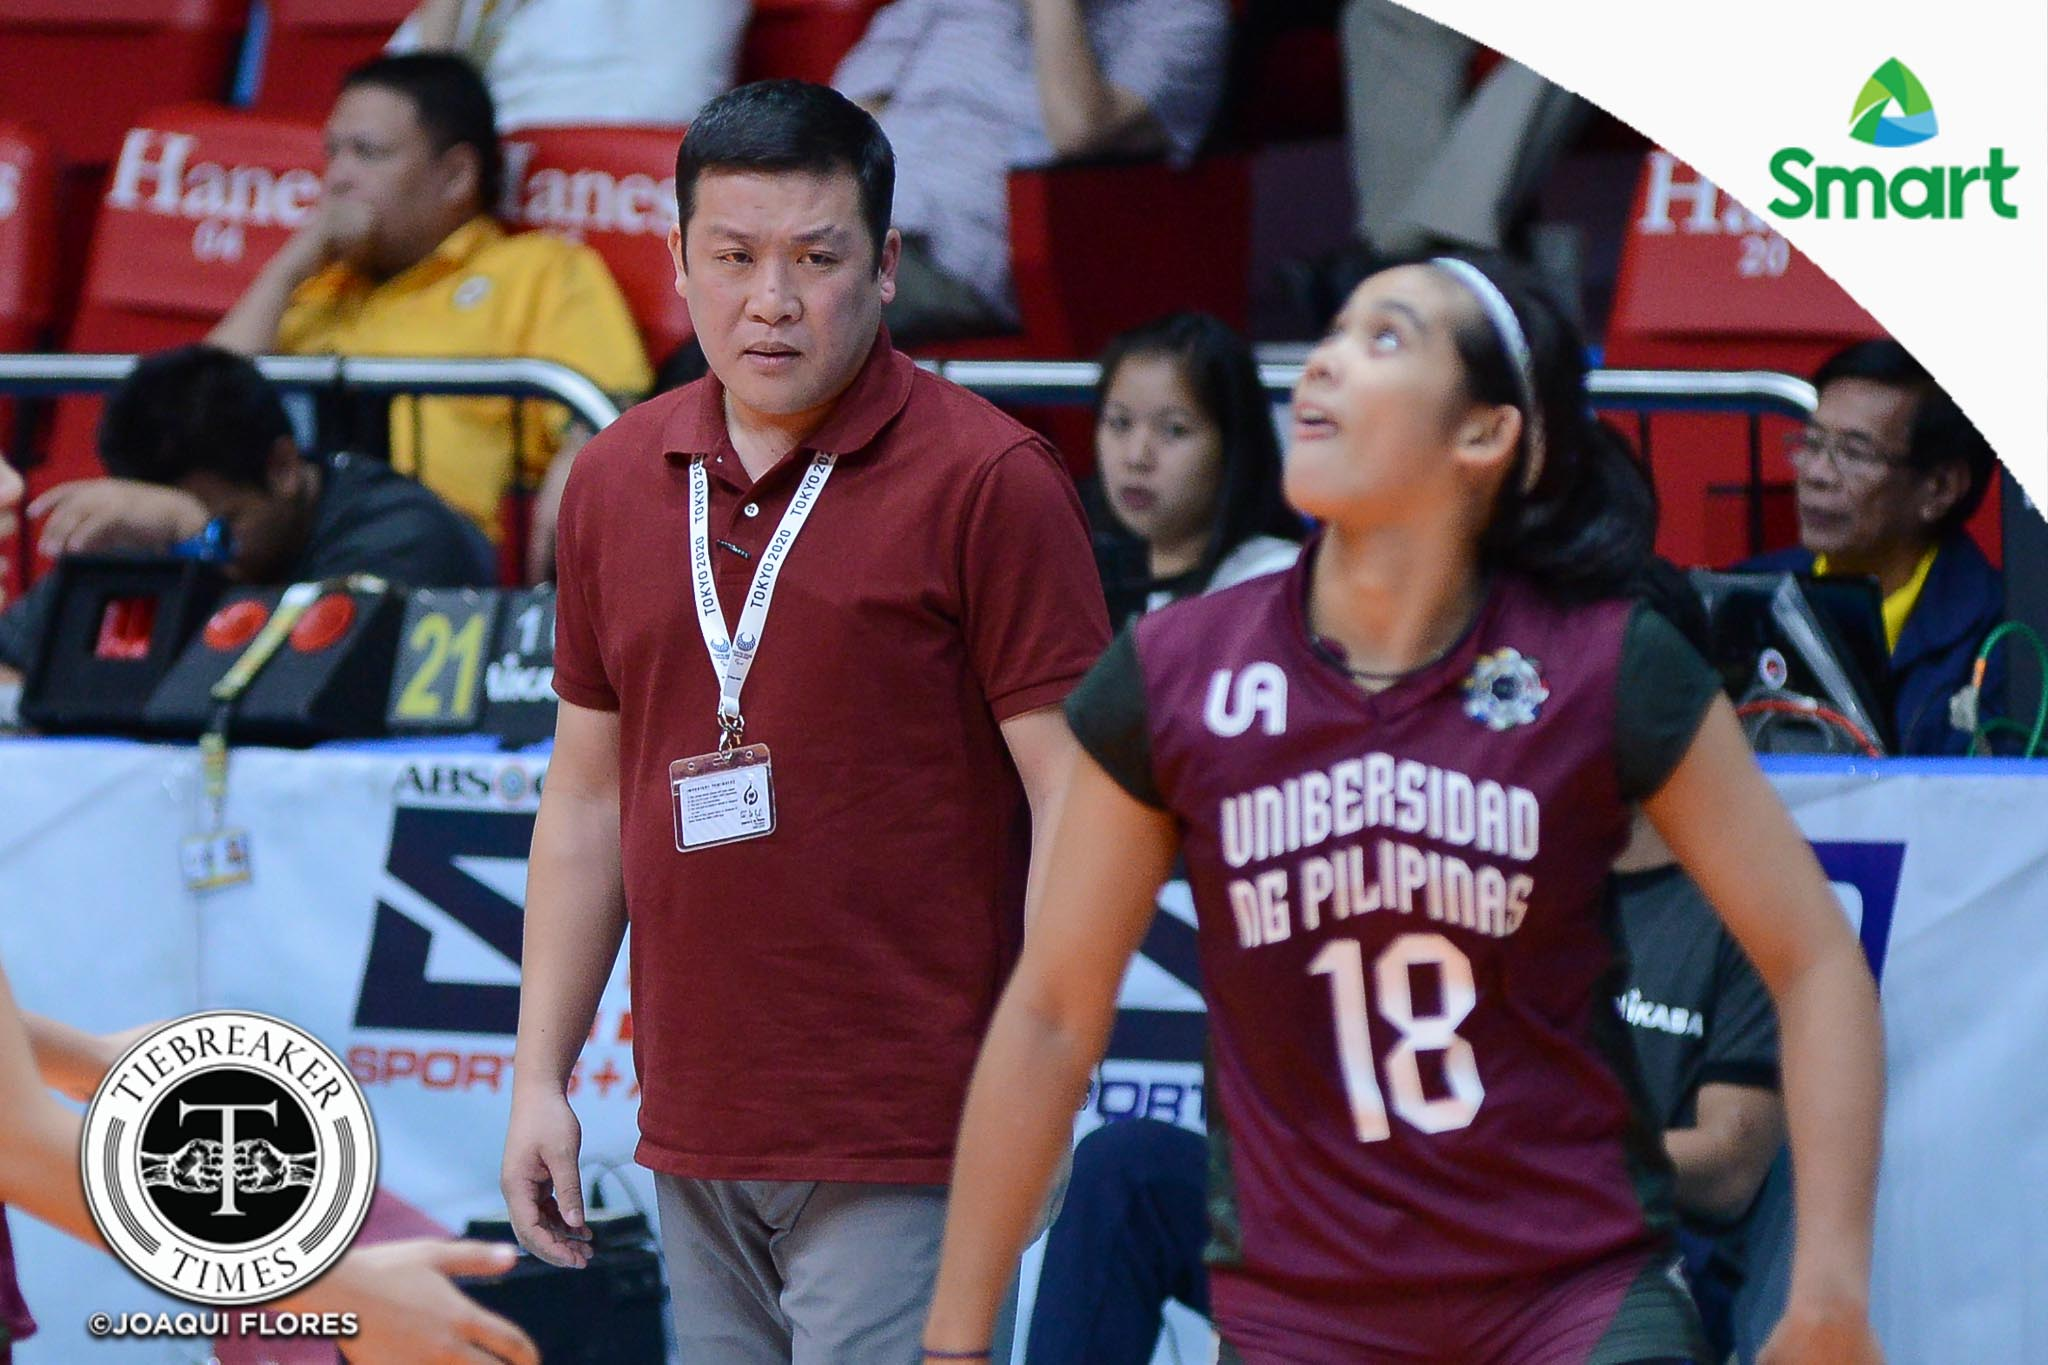 Philippine Sports News - Tiebreaker Times SOURCES: Jerry Yee leaves UP once again News PVL UAAP UP Volleyball  UP Women's Volleyball UAAP Season 80 Women's Volleyball UAAP Season 80 Jerry Yee 2017 PVL Women's Collegiate Conference 2017 PVL Season